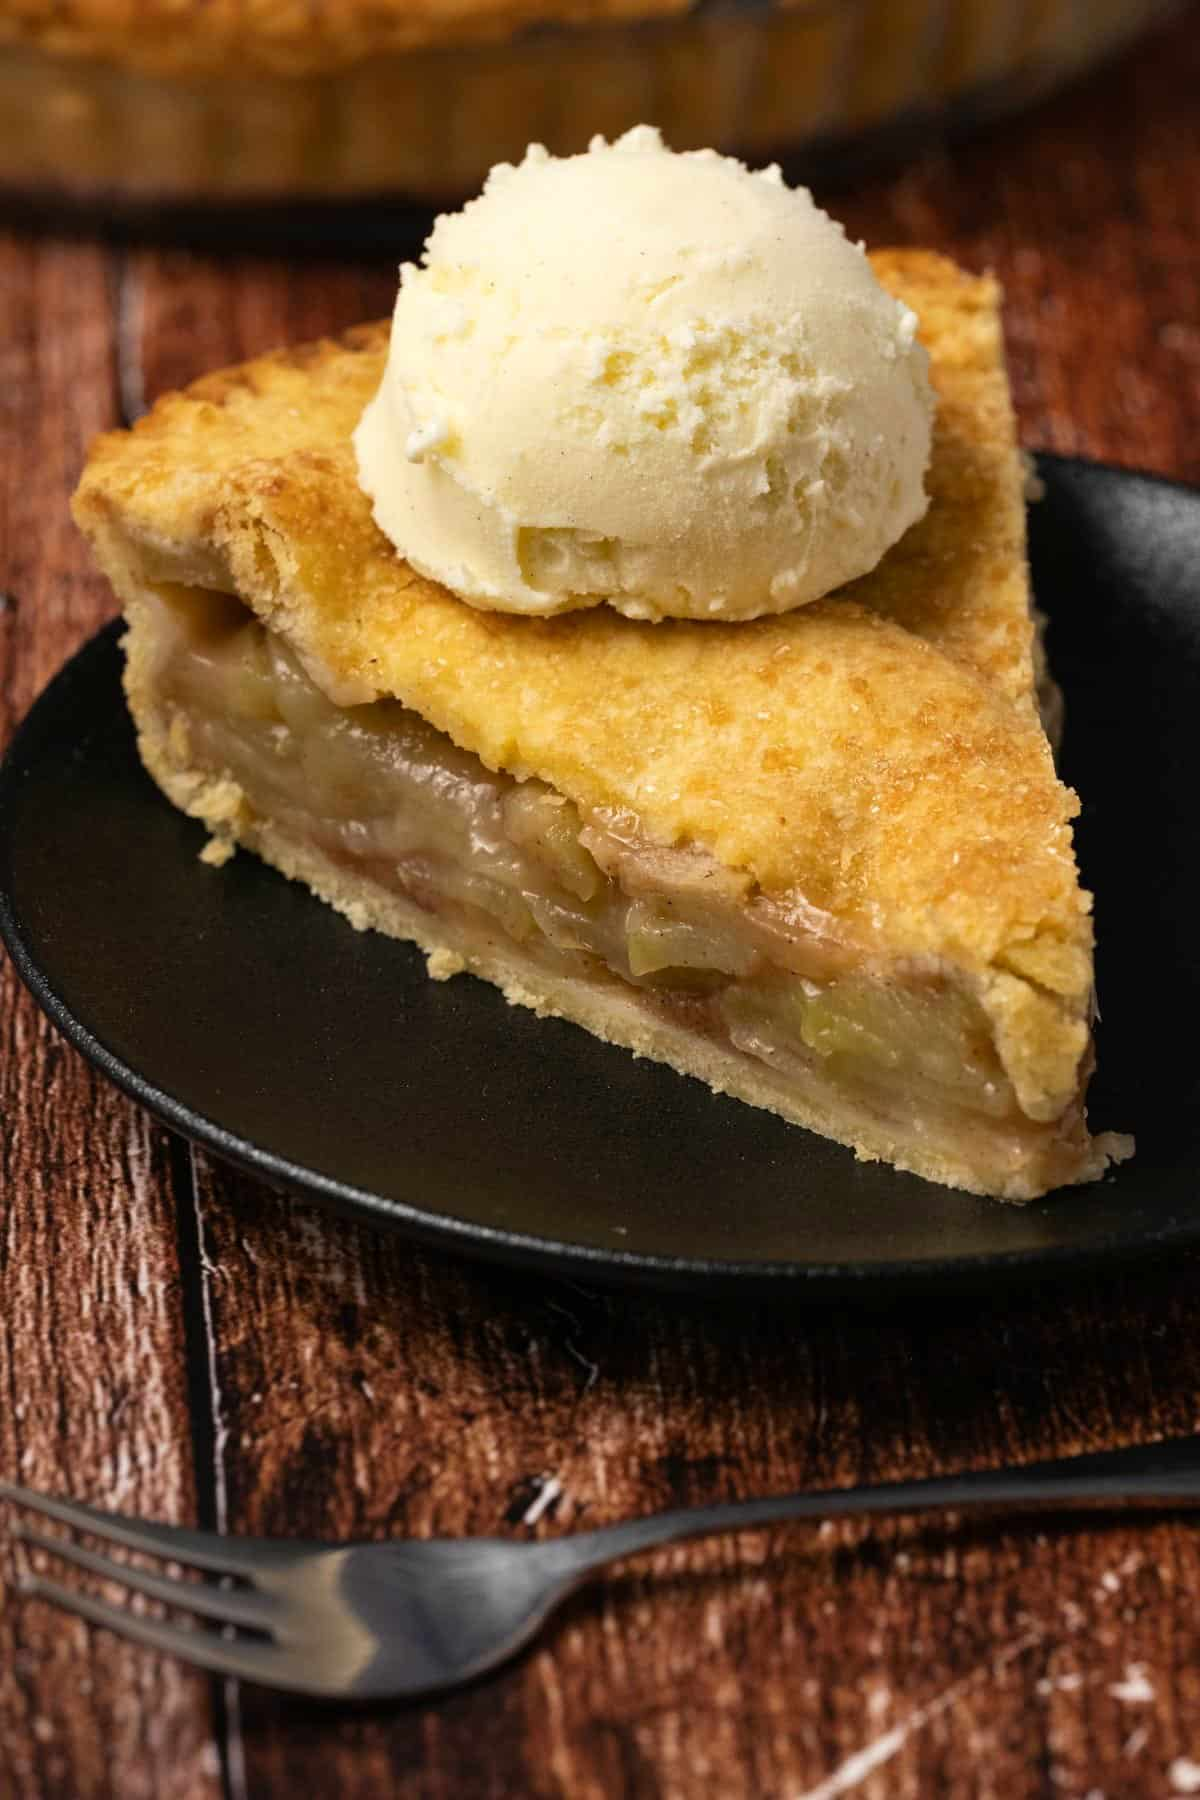 Slice of apple pie topped with ice cream on a black plate.